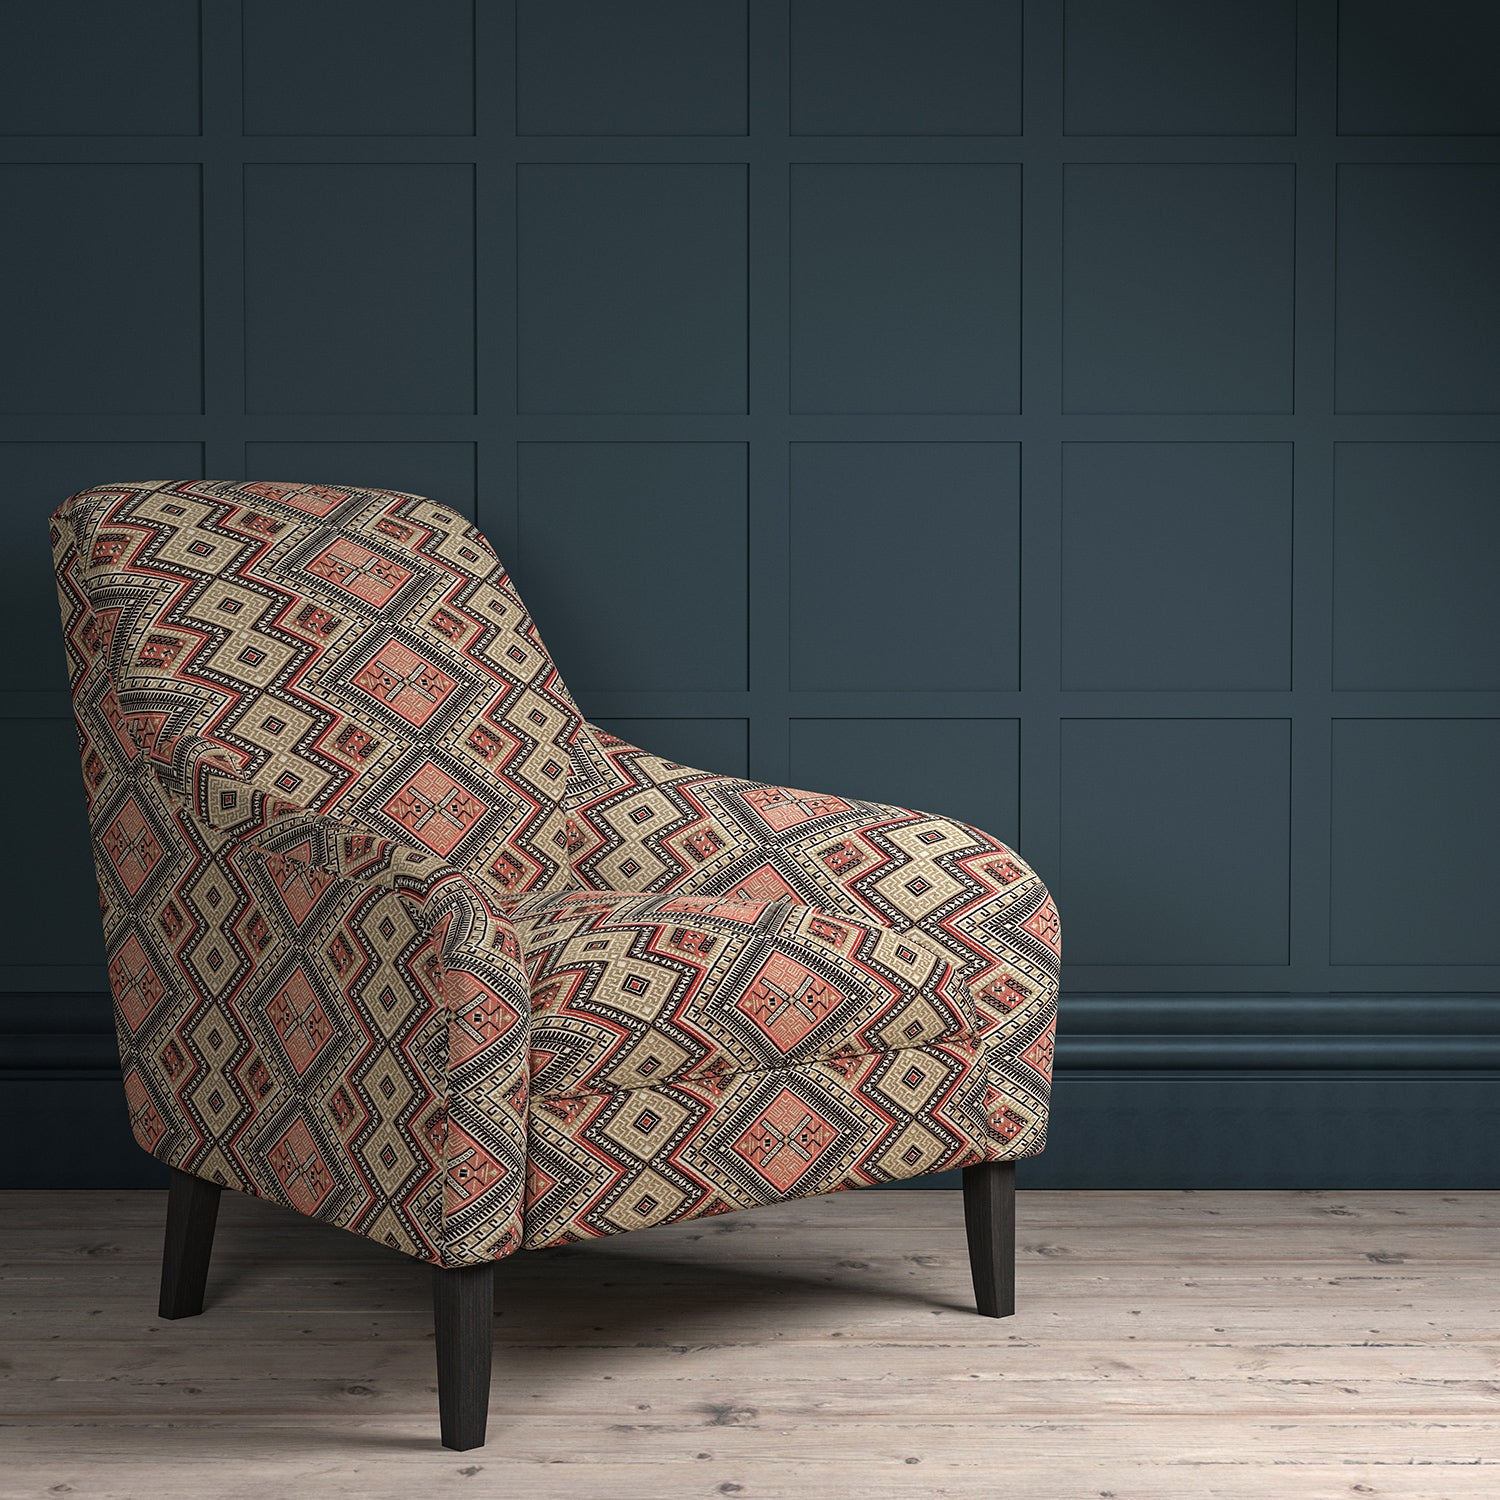 Chair upholstered in a coral coloured geometric upholstery fabric